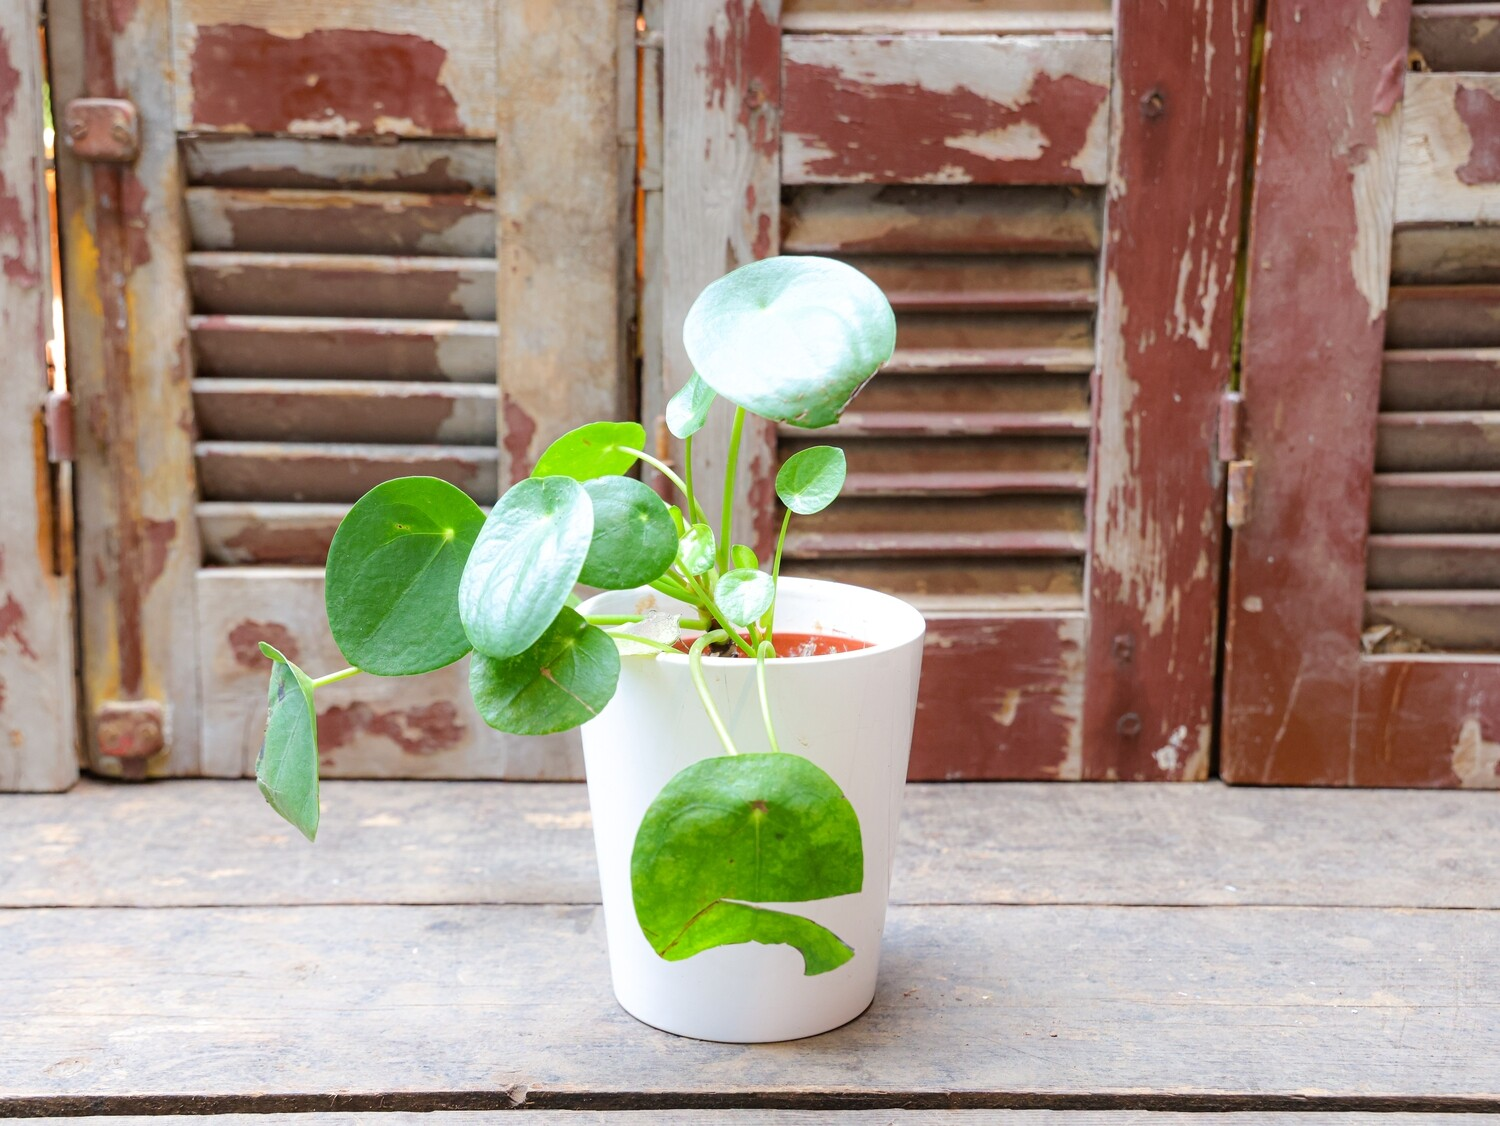 Pilea peperomoides (Plant) - Nature by Marc Beyrouthy